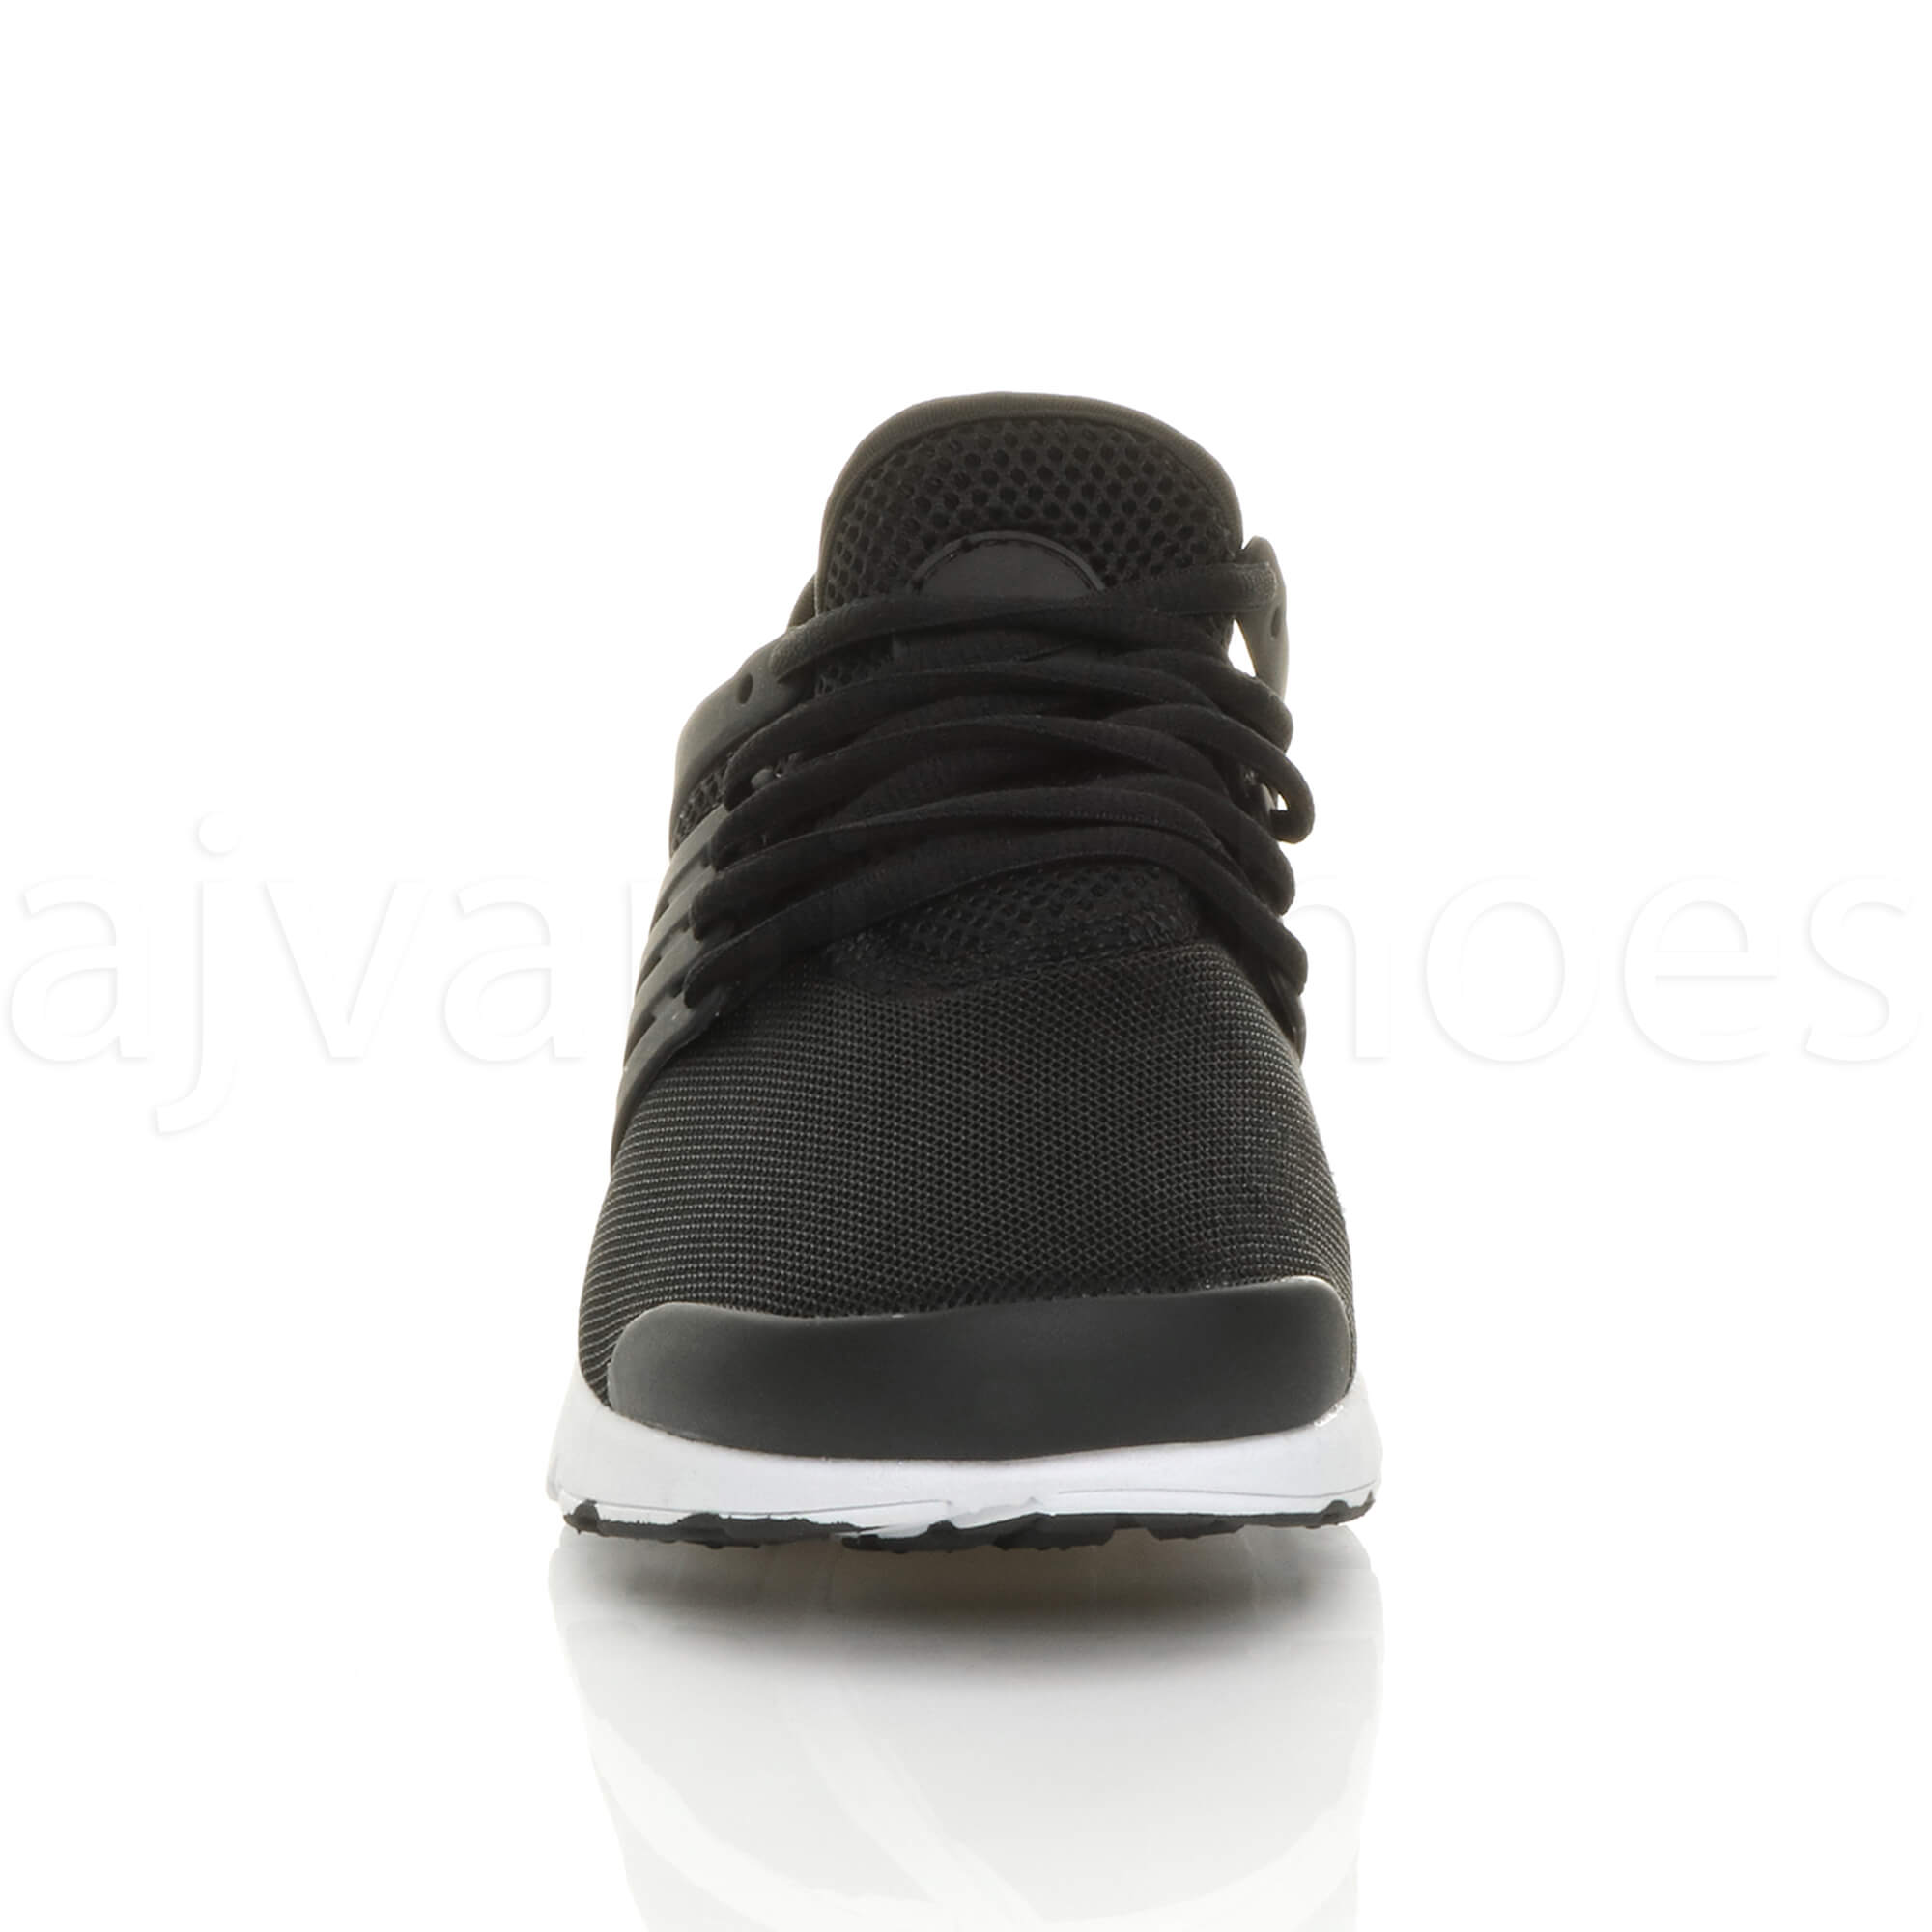 MENS-LACE-UP-SPORTS-GYM-FITNESS-RUNNING-FLEXIBLE-TRAINERS-CASUAL-SNEAKERS-SIZE thumbnail 15